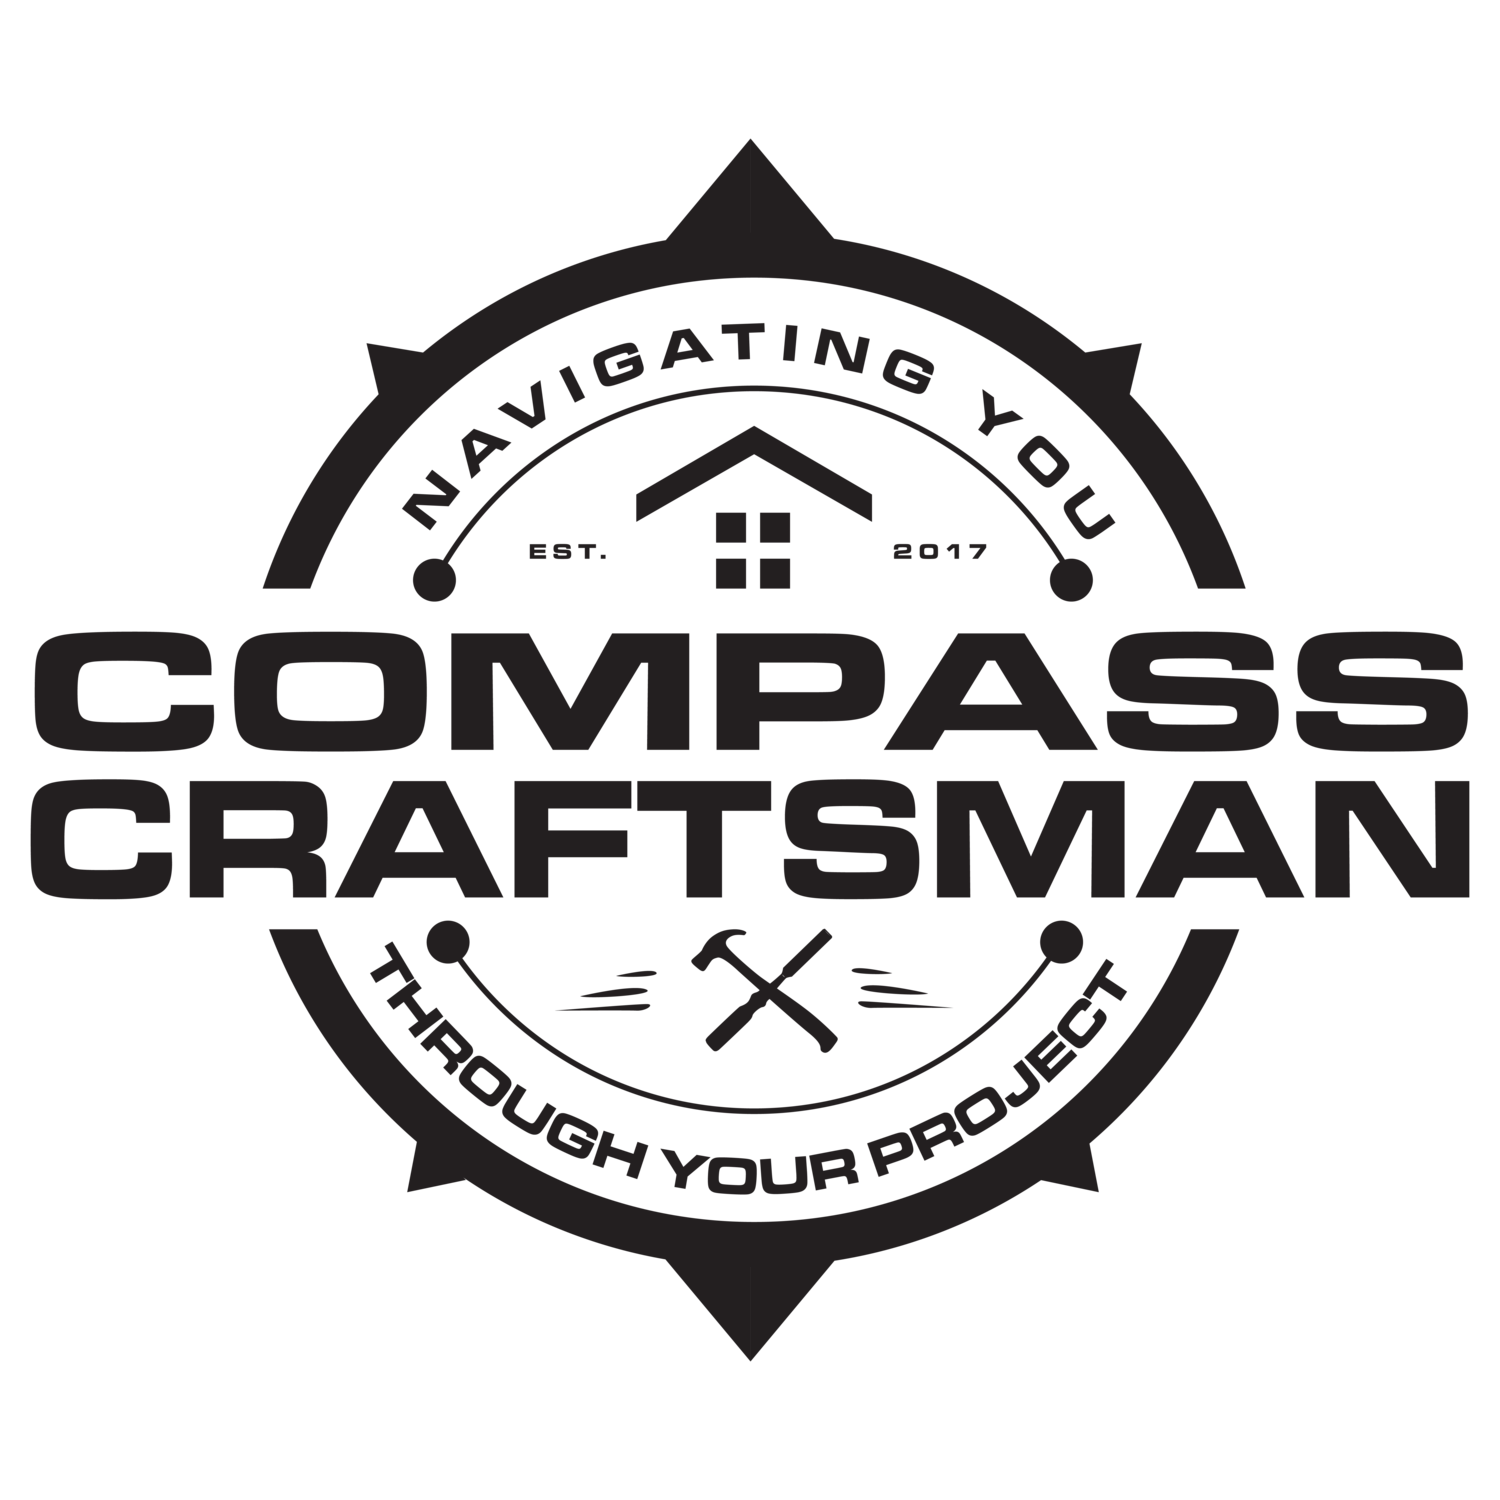 Compass Craftsman